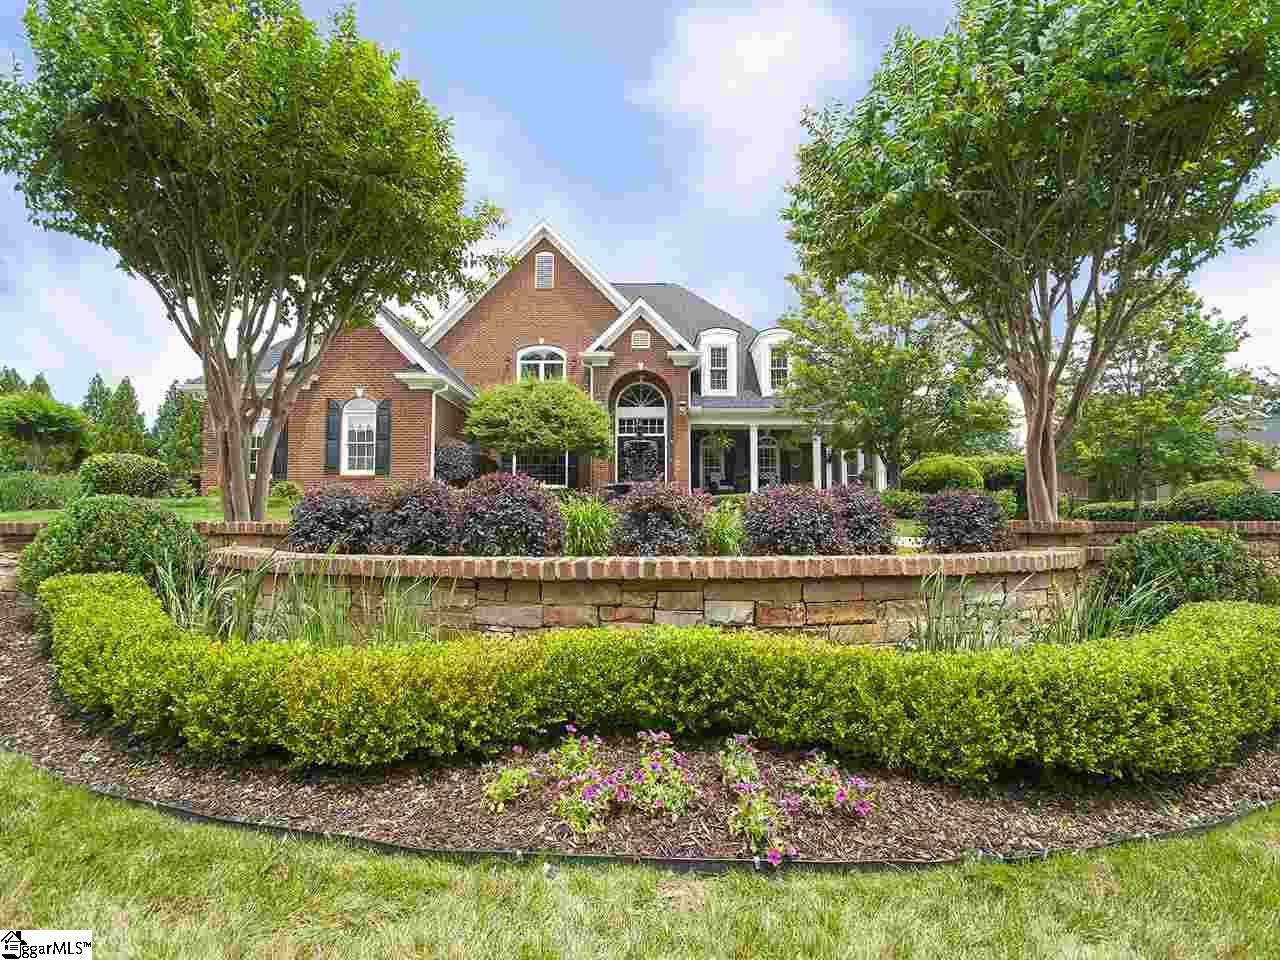 305 Stonebrook Farm, Greenville, SC 29615